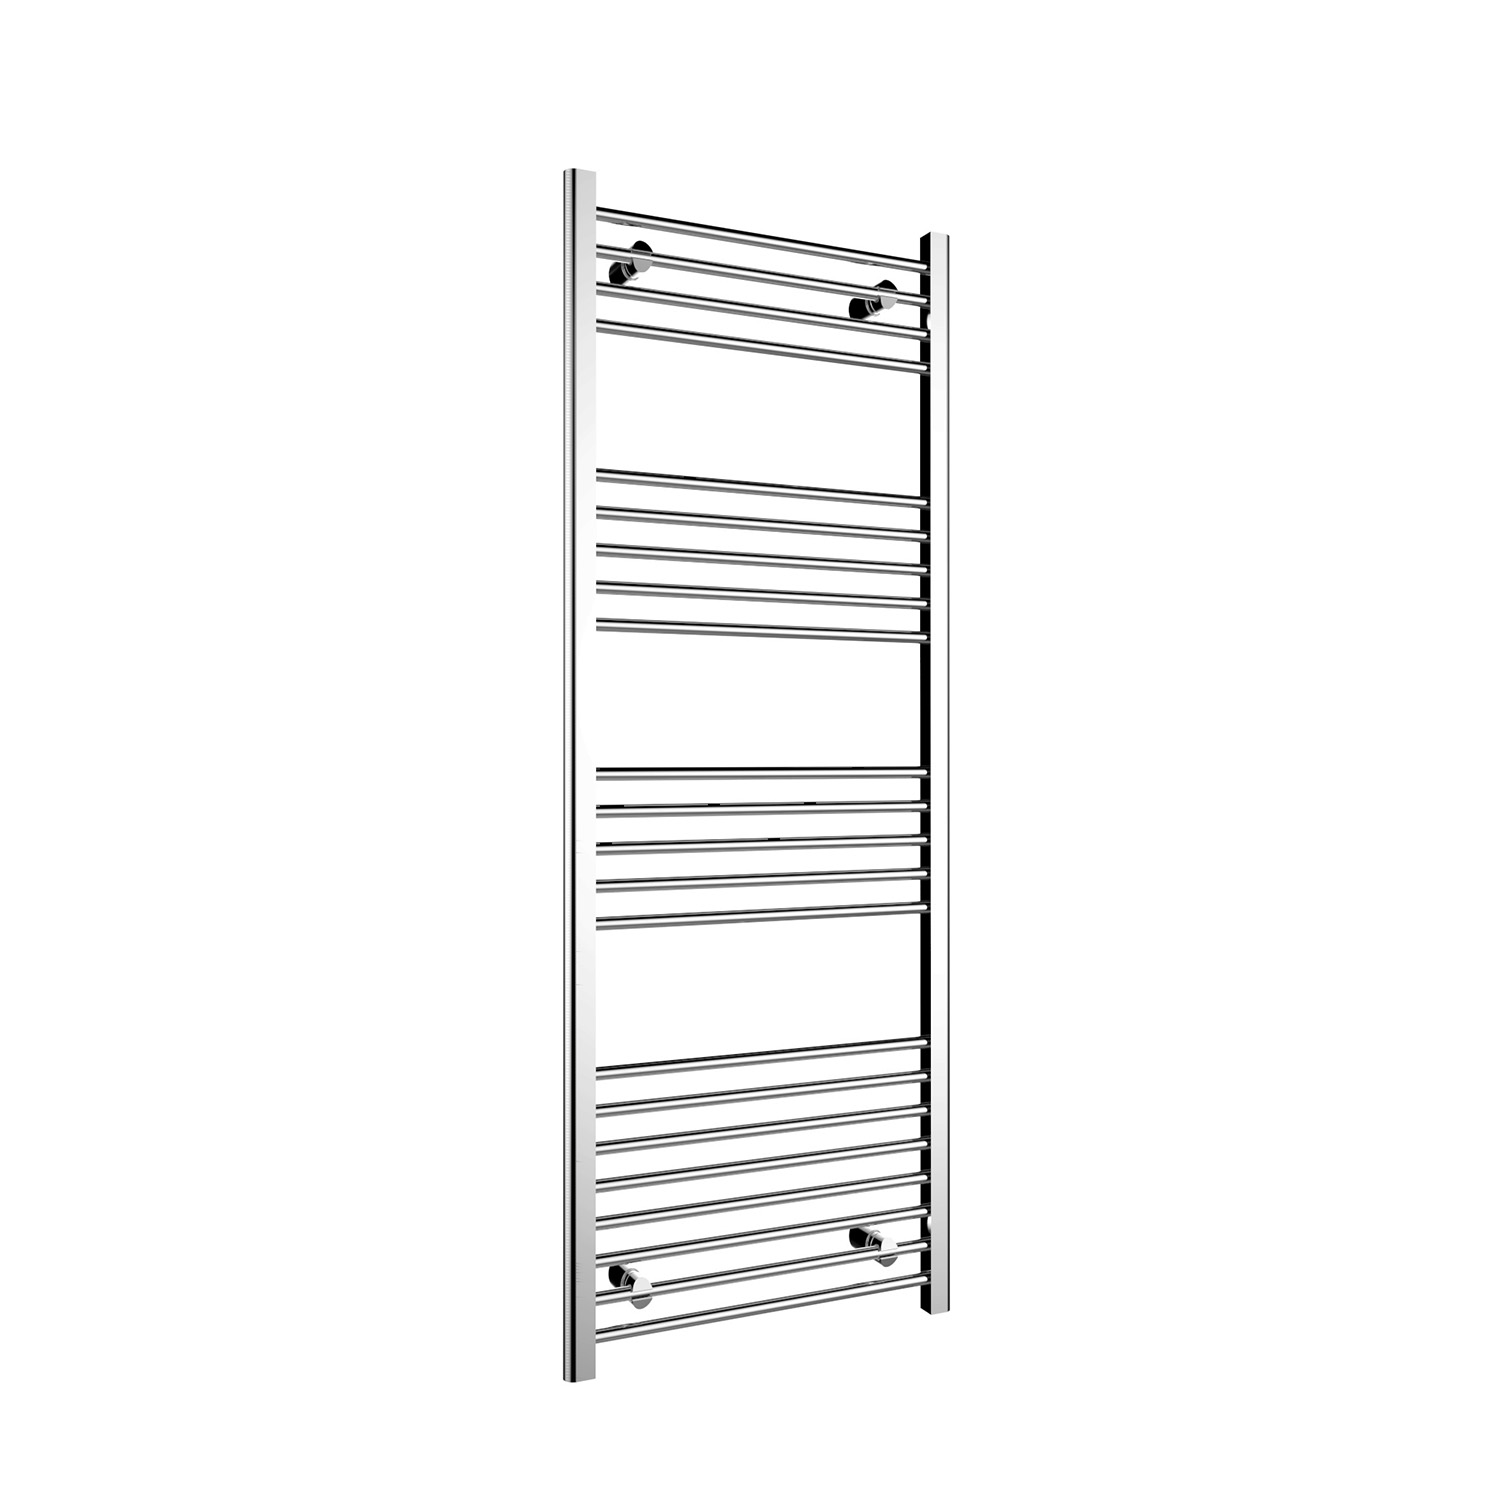 SALLY R2-1660ST Stainless Steel Towel Radiator